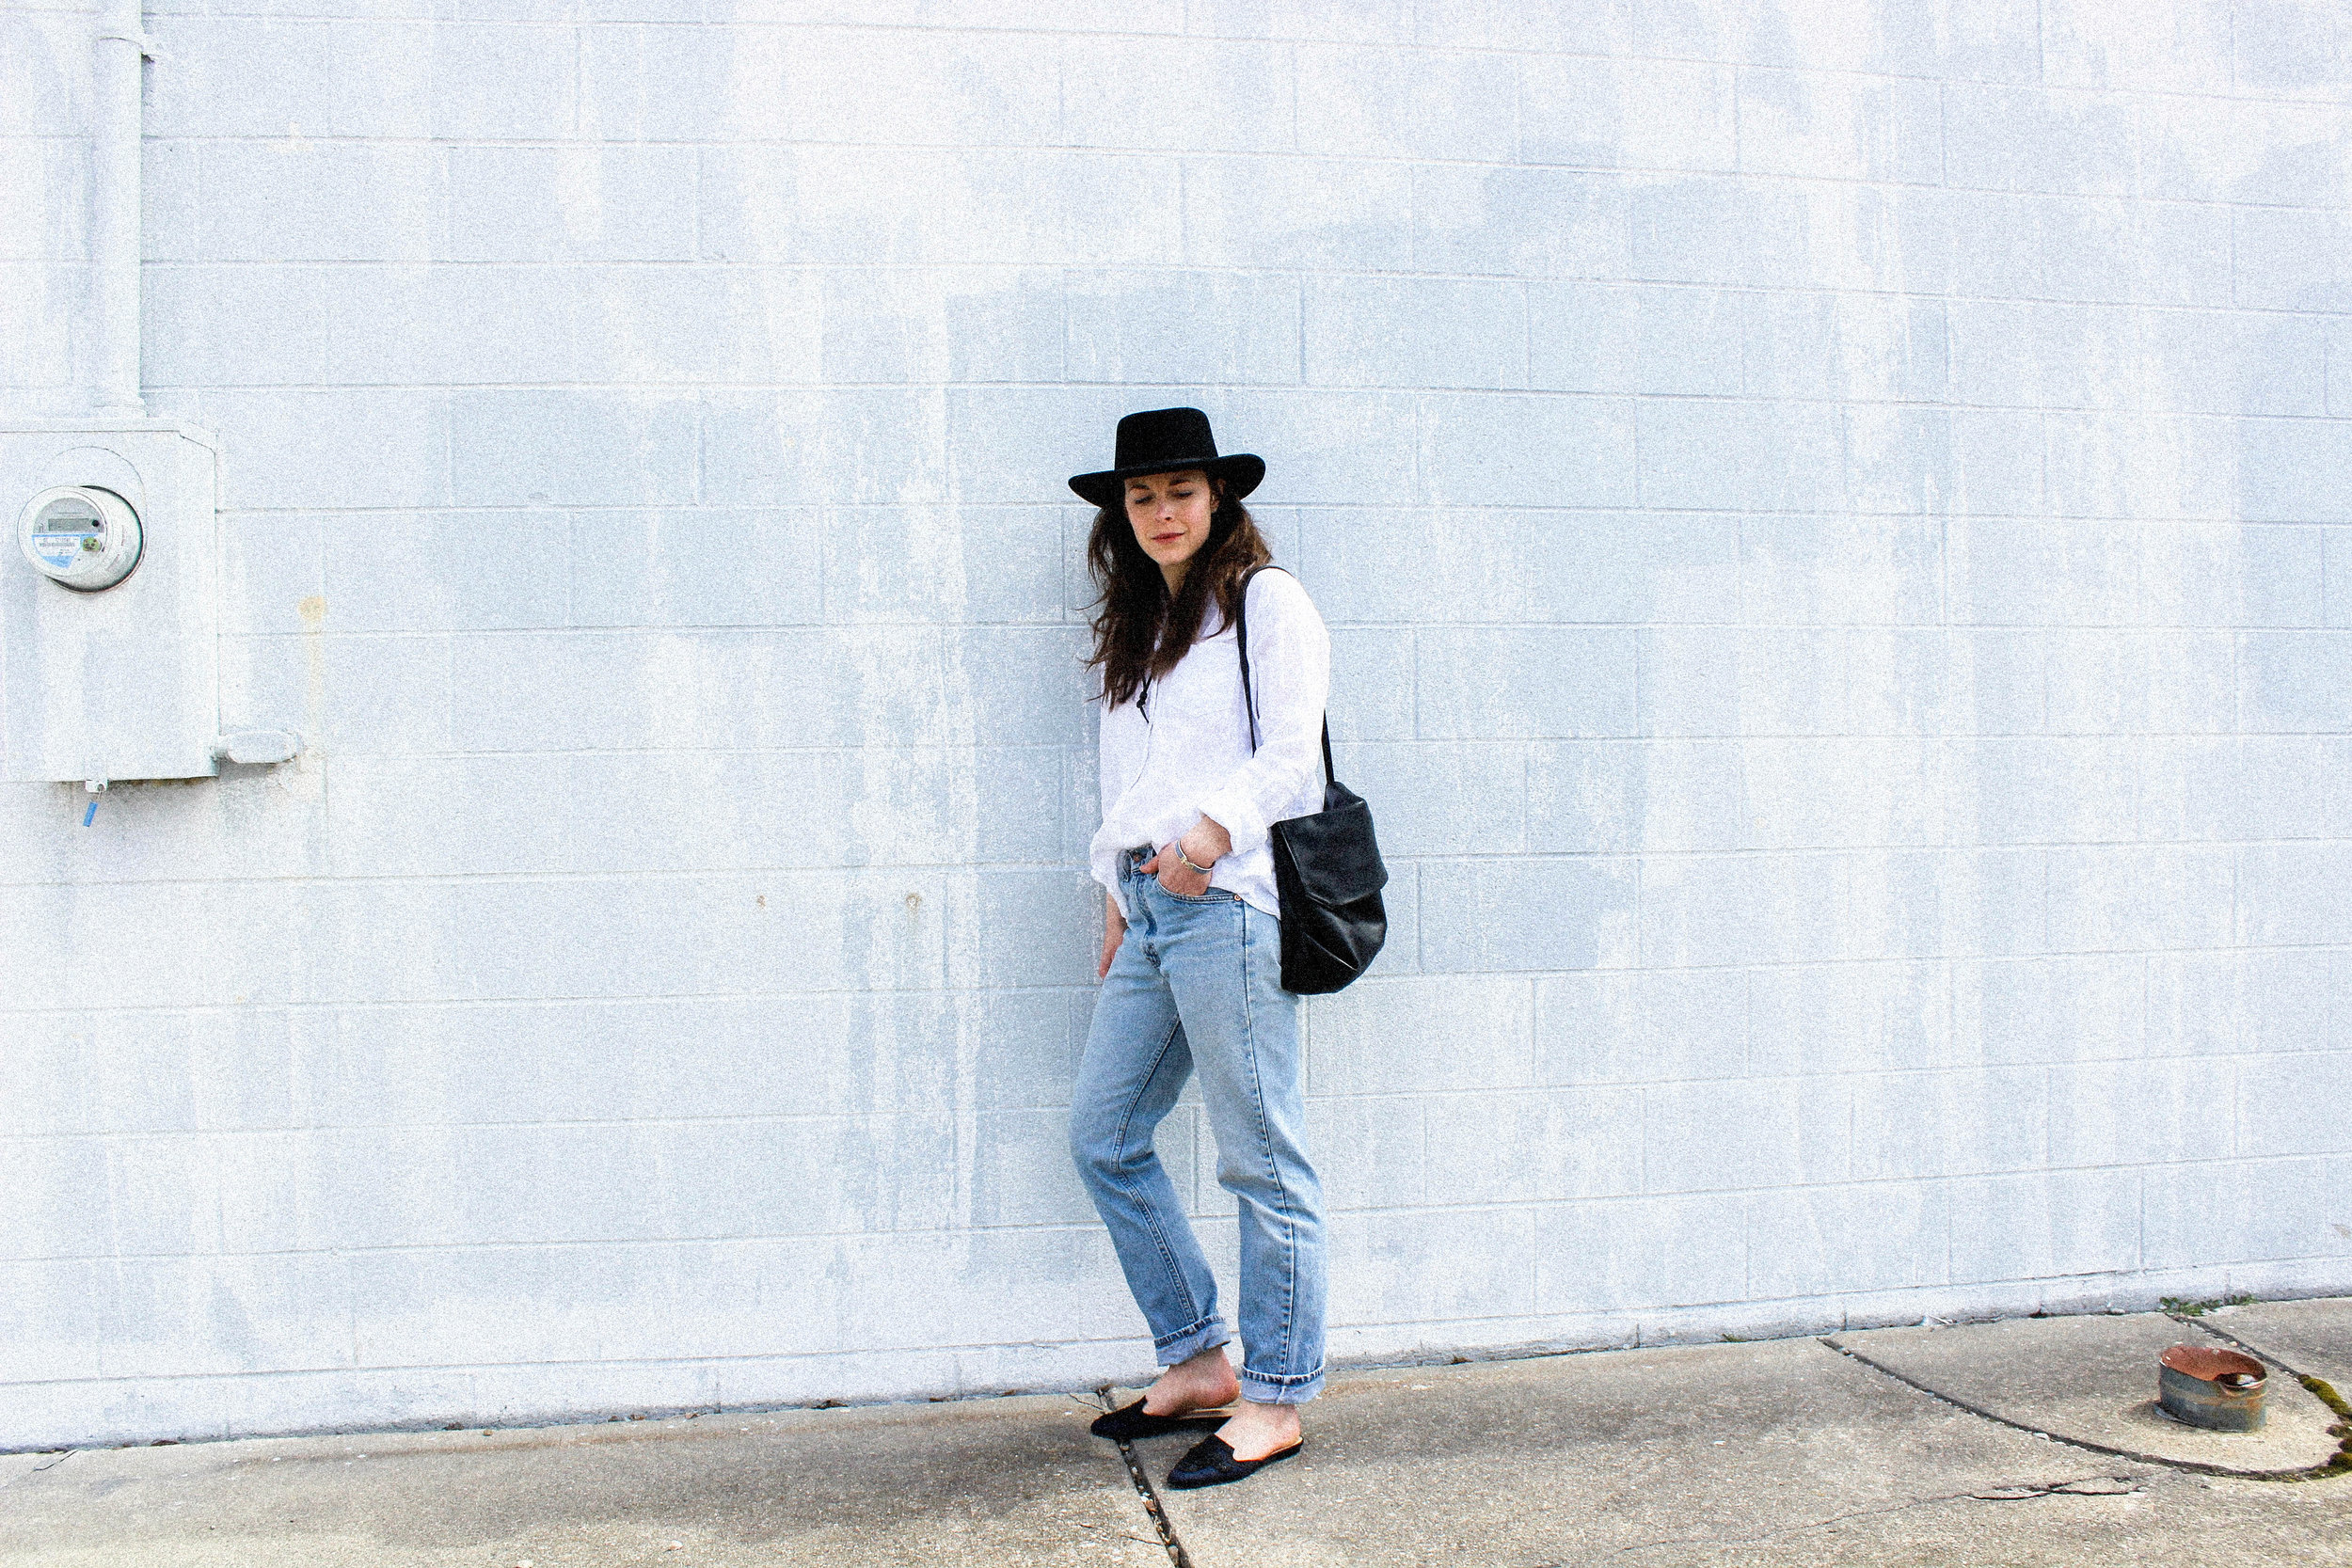 Wearing Tio y Tia Gambler Hat, Grana Linen Boyfriend Shirt, Thrifted Levi Jeans, Oscar De La Renta Spanish Mules, and Kristiina Taylor Frankie Shoulder Bag (coming soon).